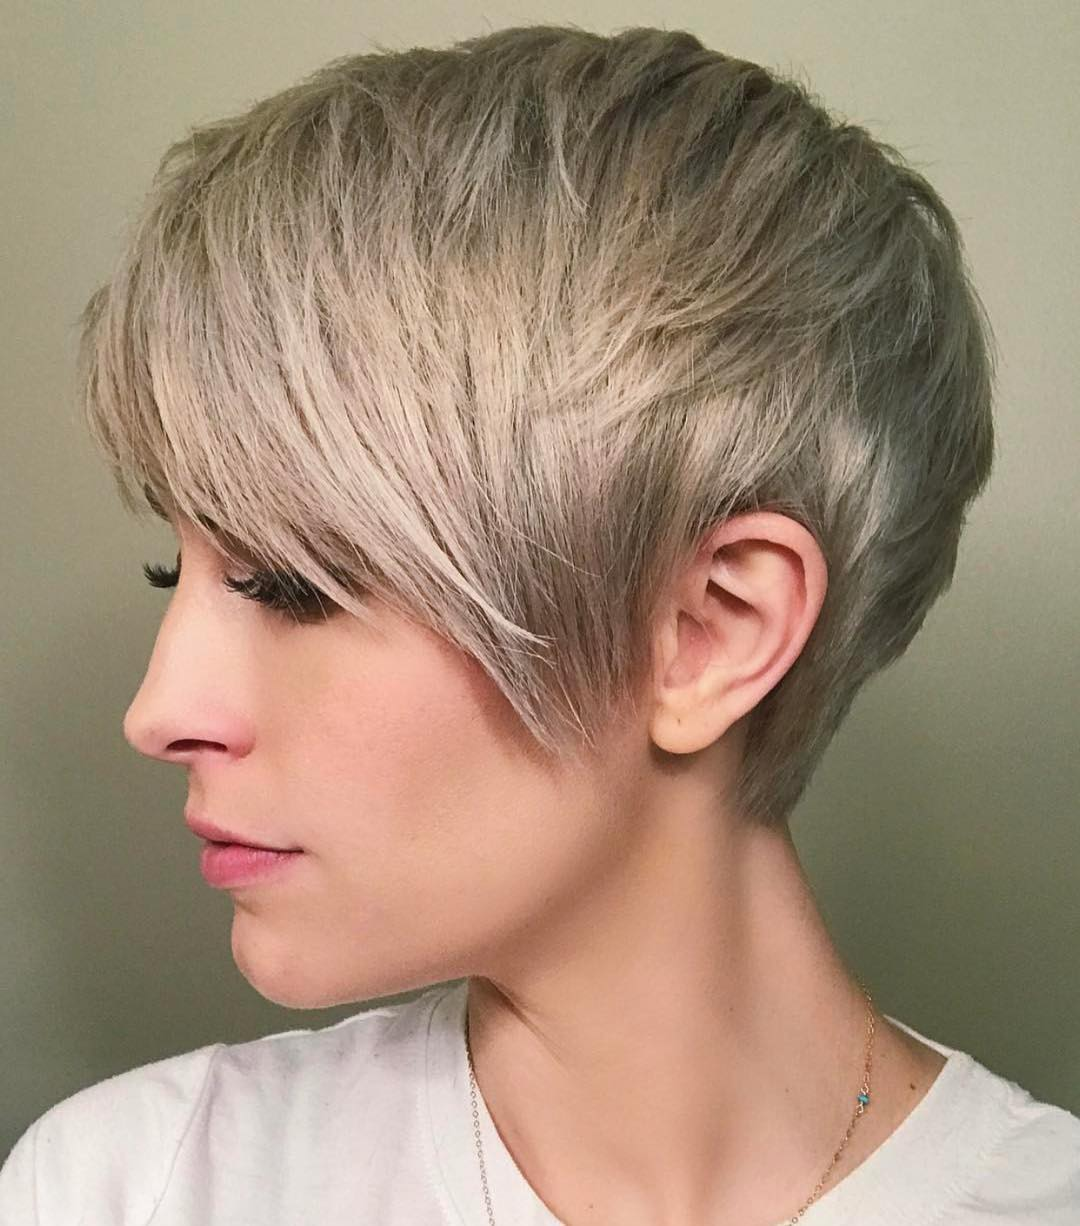 10 Best Short Straight Hairstyle Trends